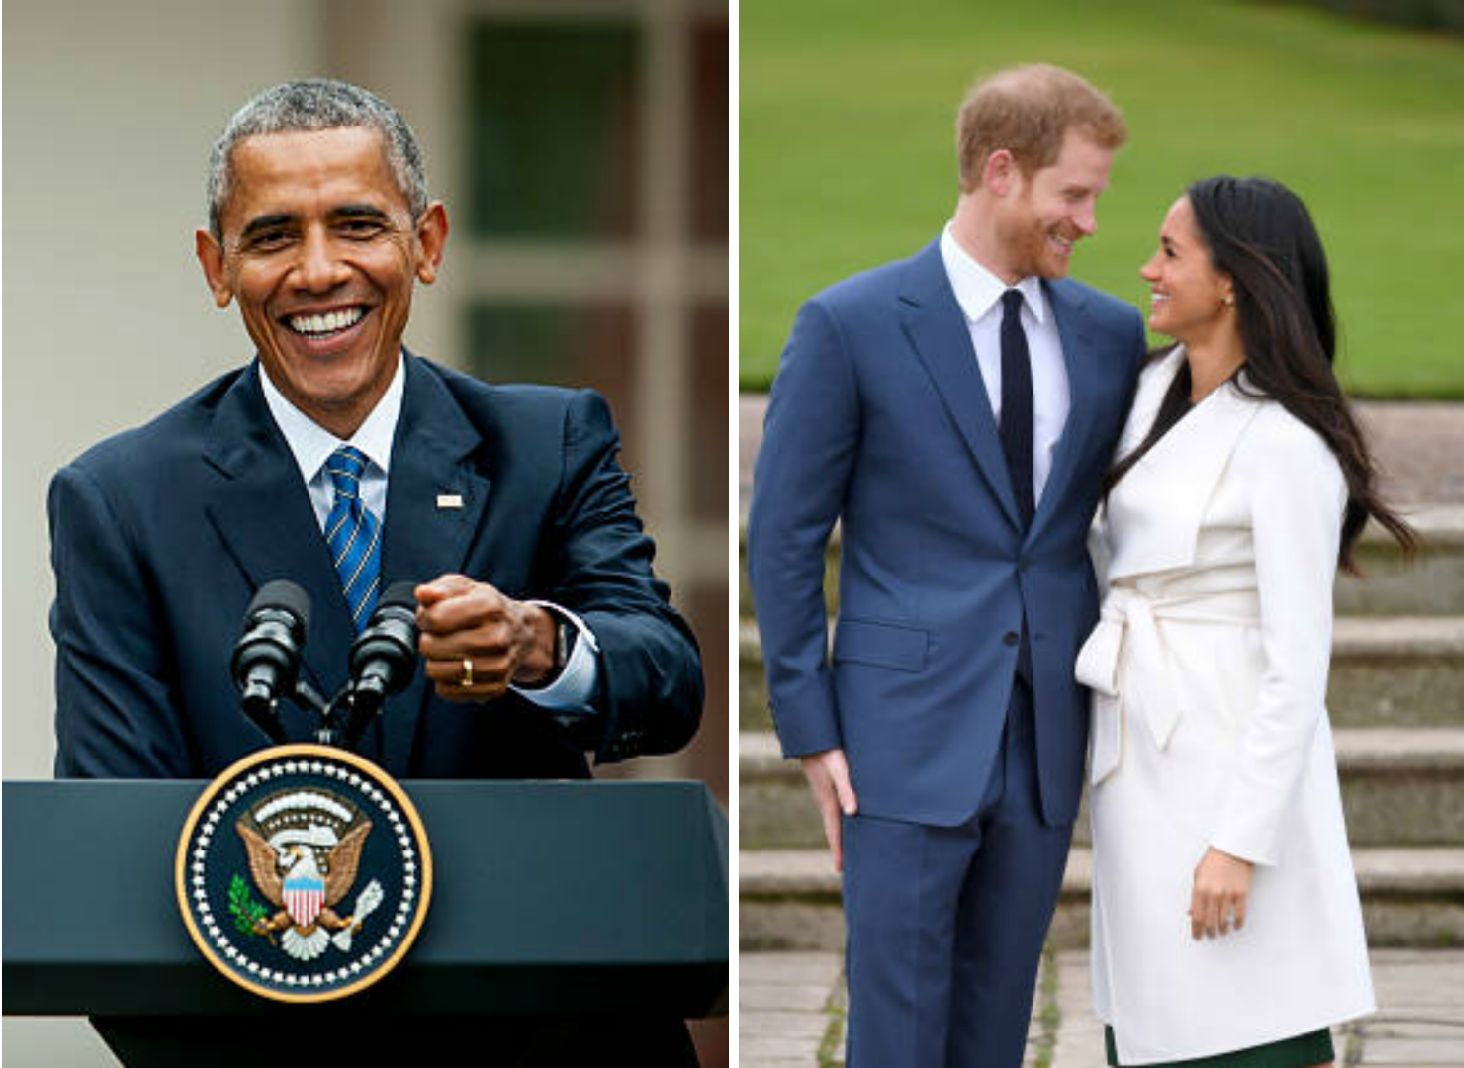 Barack Obama Congratulates Prince Harry And Meghan Markle On Engagement